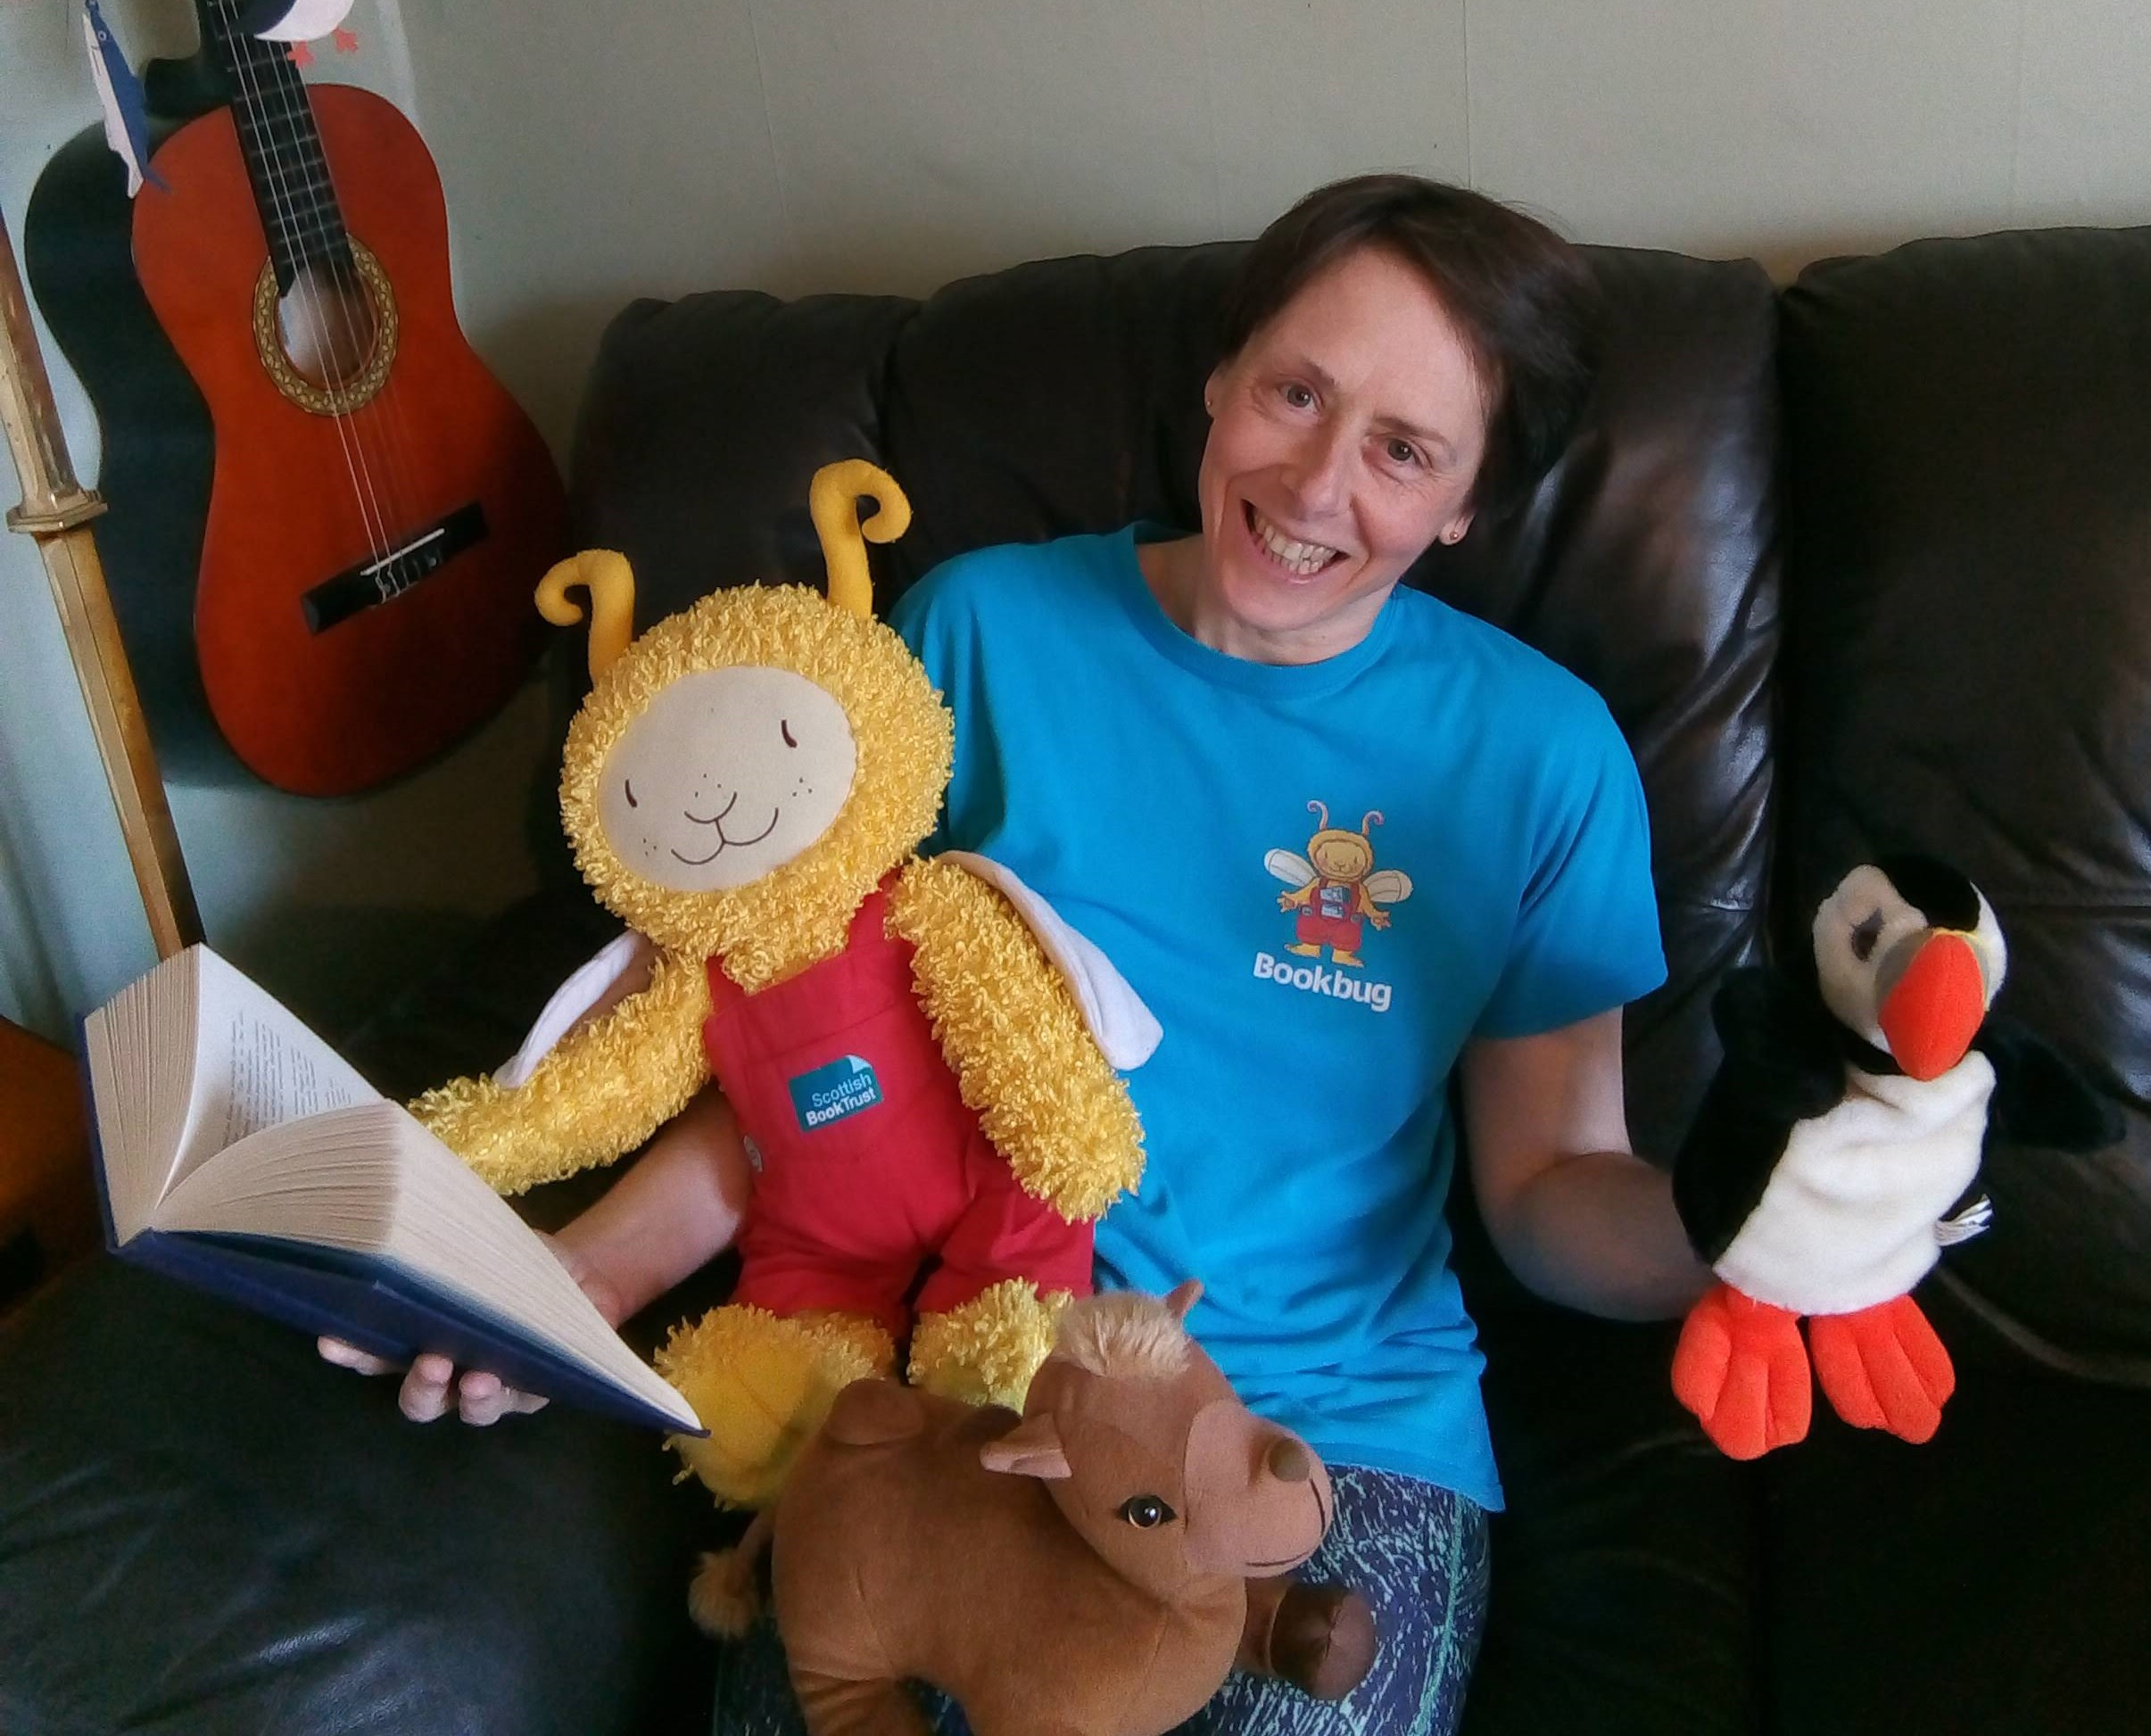 Bookbug Live with Joolz.